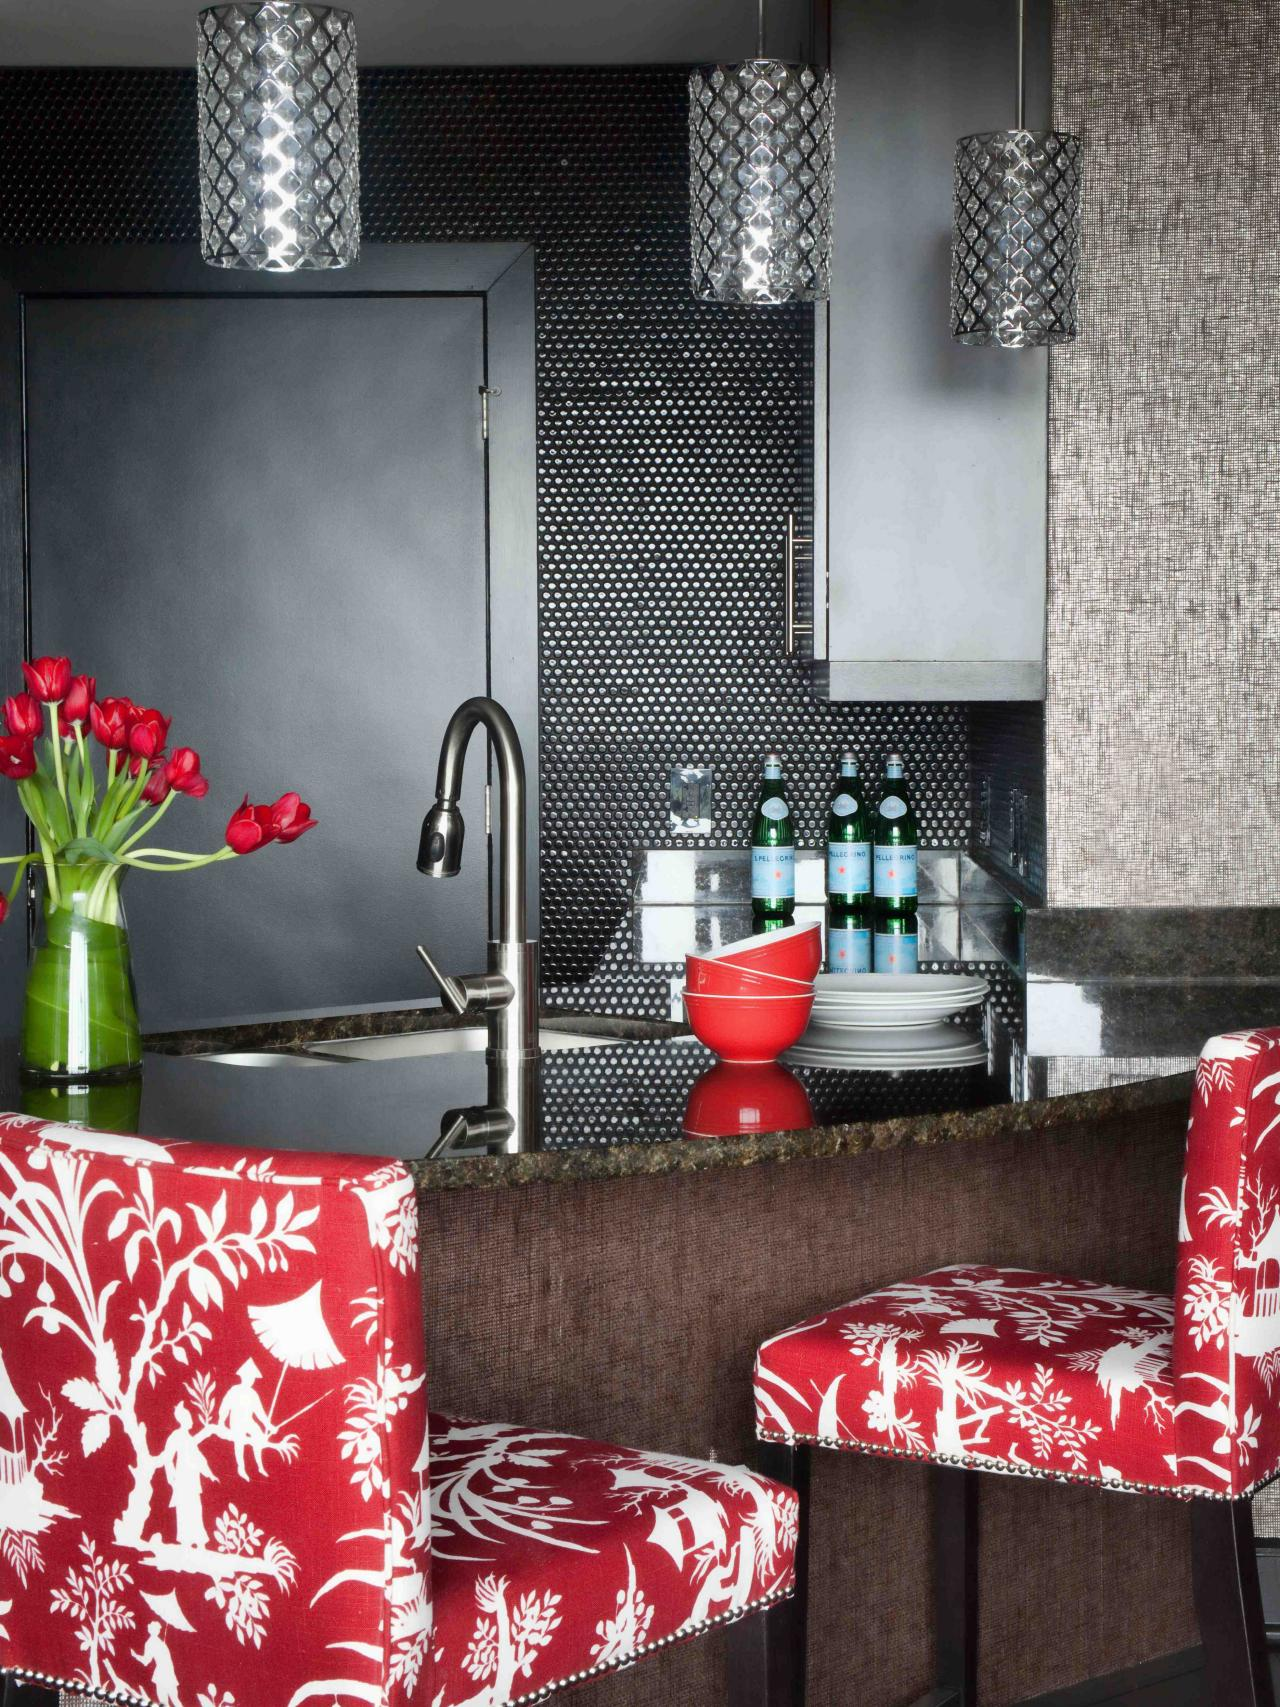 Add a touch of red and get bold with it!